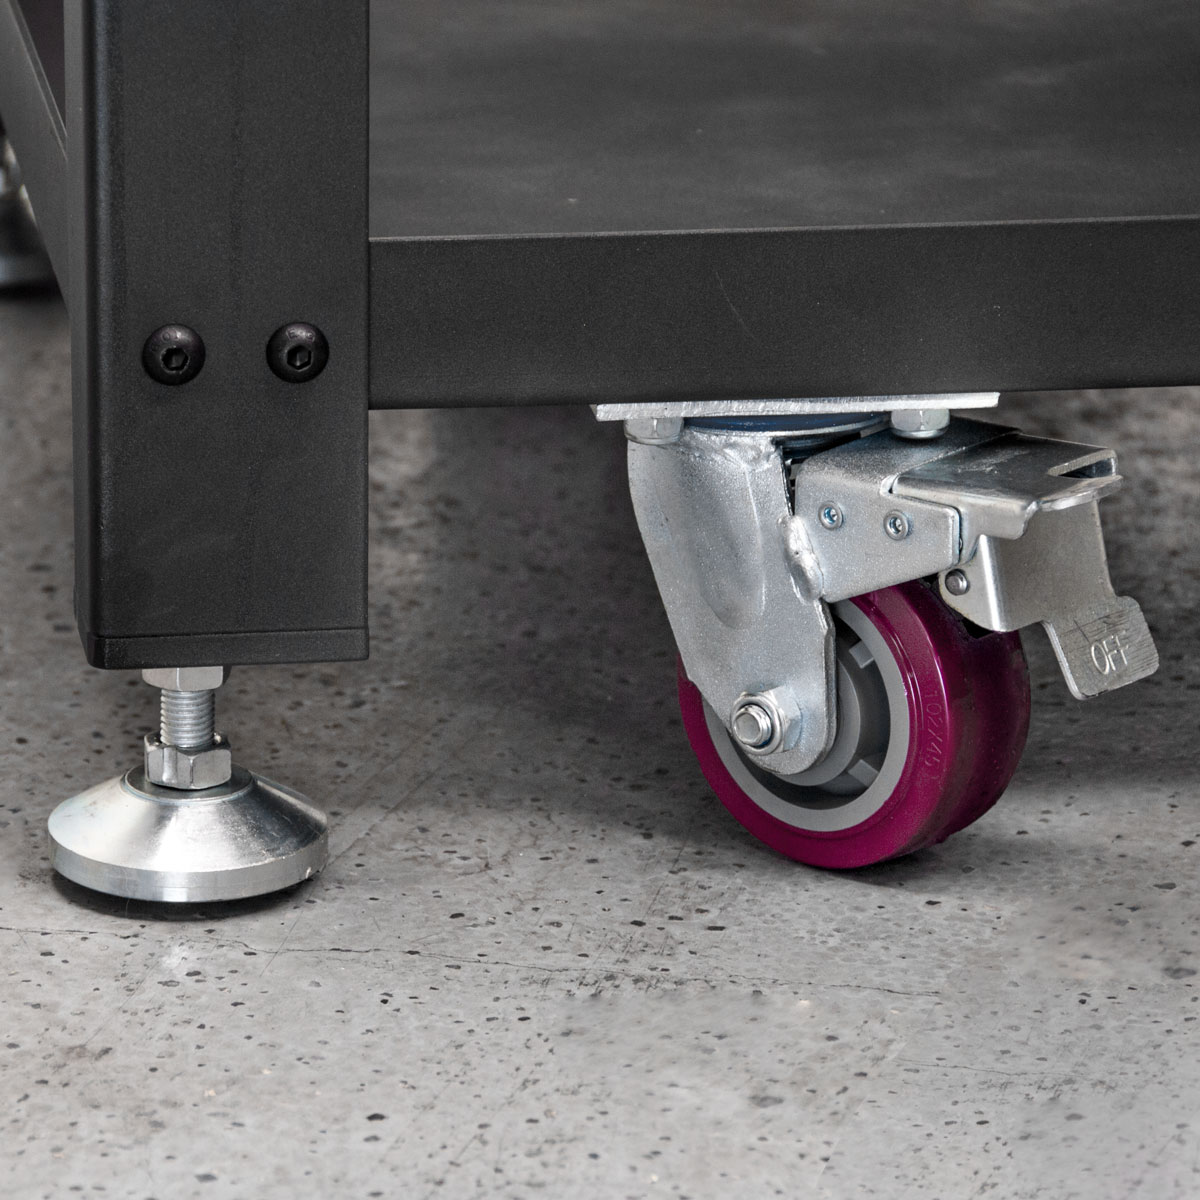 Locking casters and leveling feet